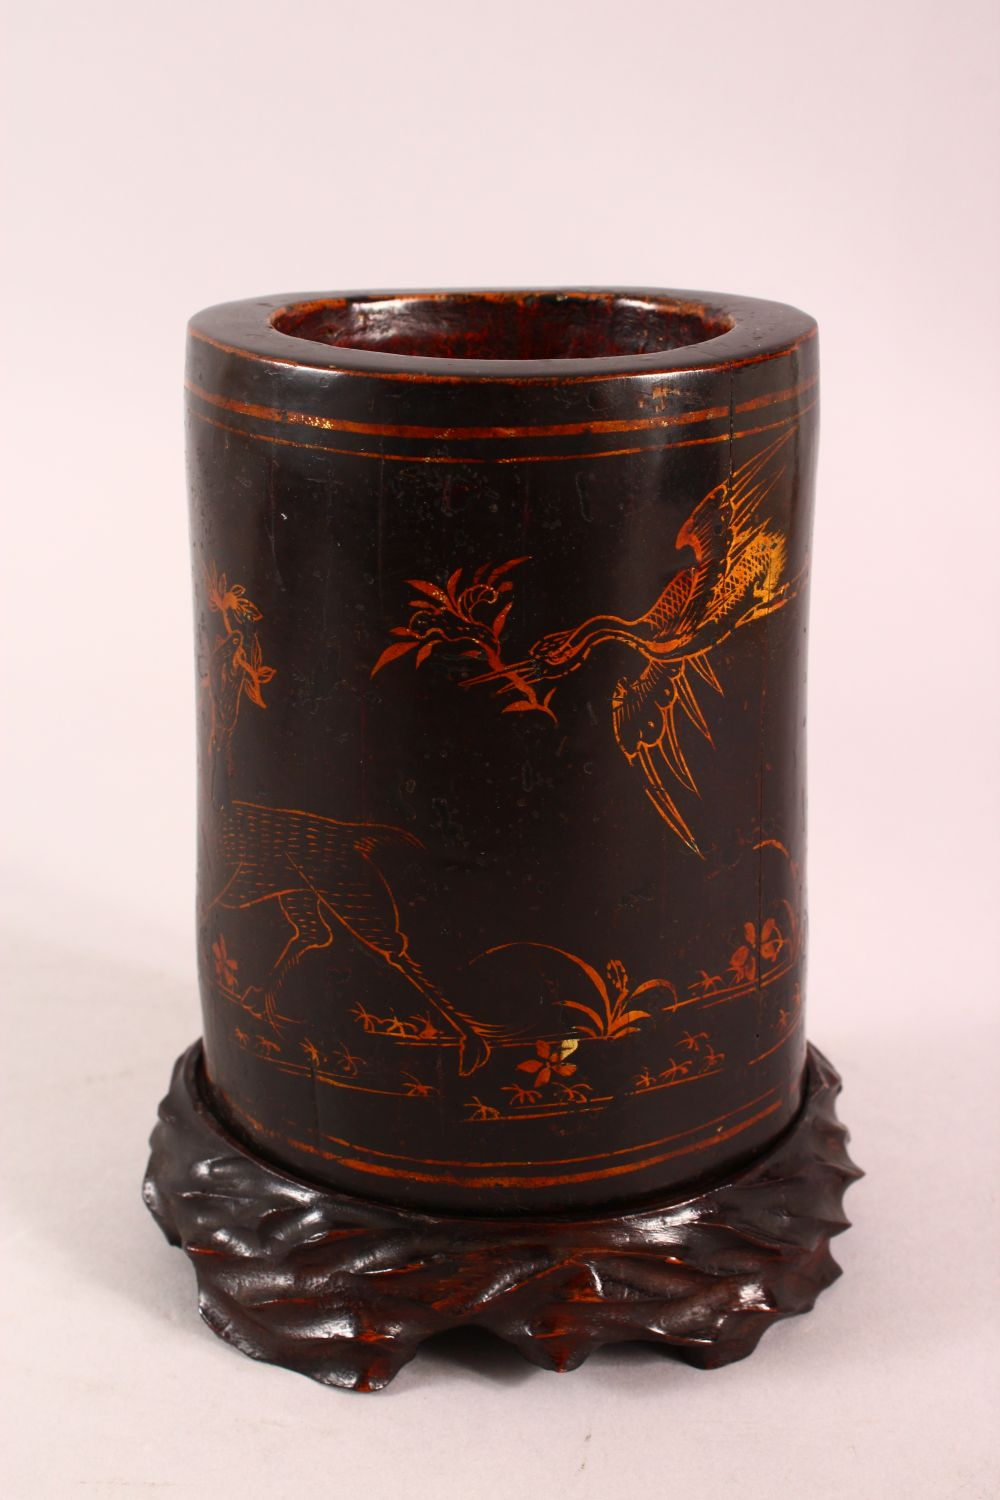 A CHINESE LACQUERED BAMBOO BRUSH WASH AND STAND, the body decorated with birds in landscapes, 19cm - Image 3 of 7